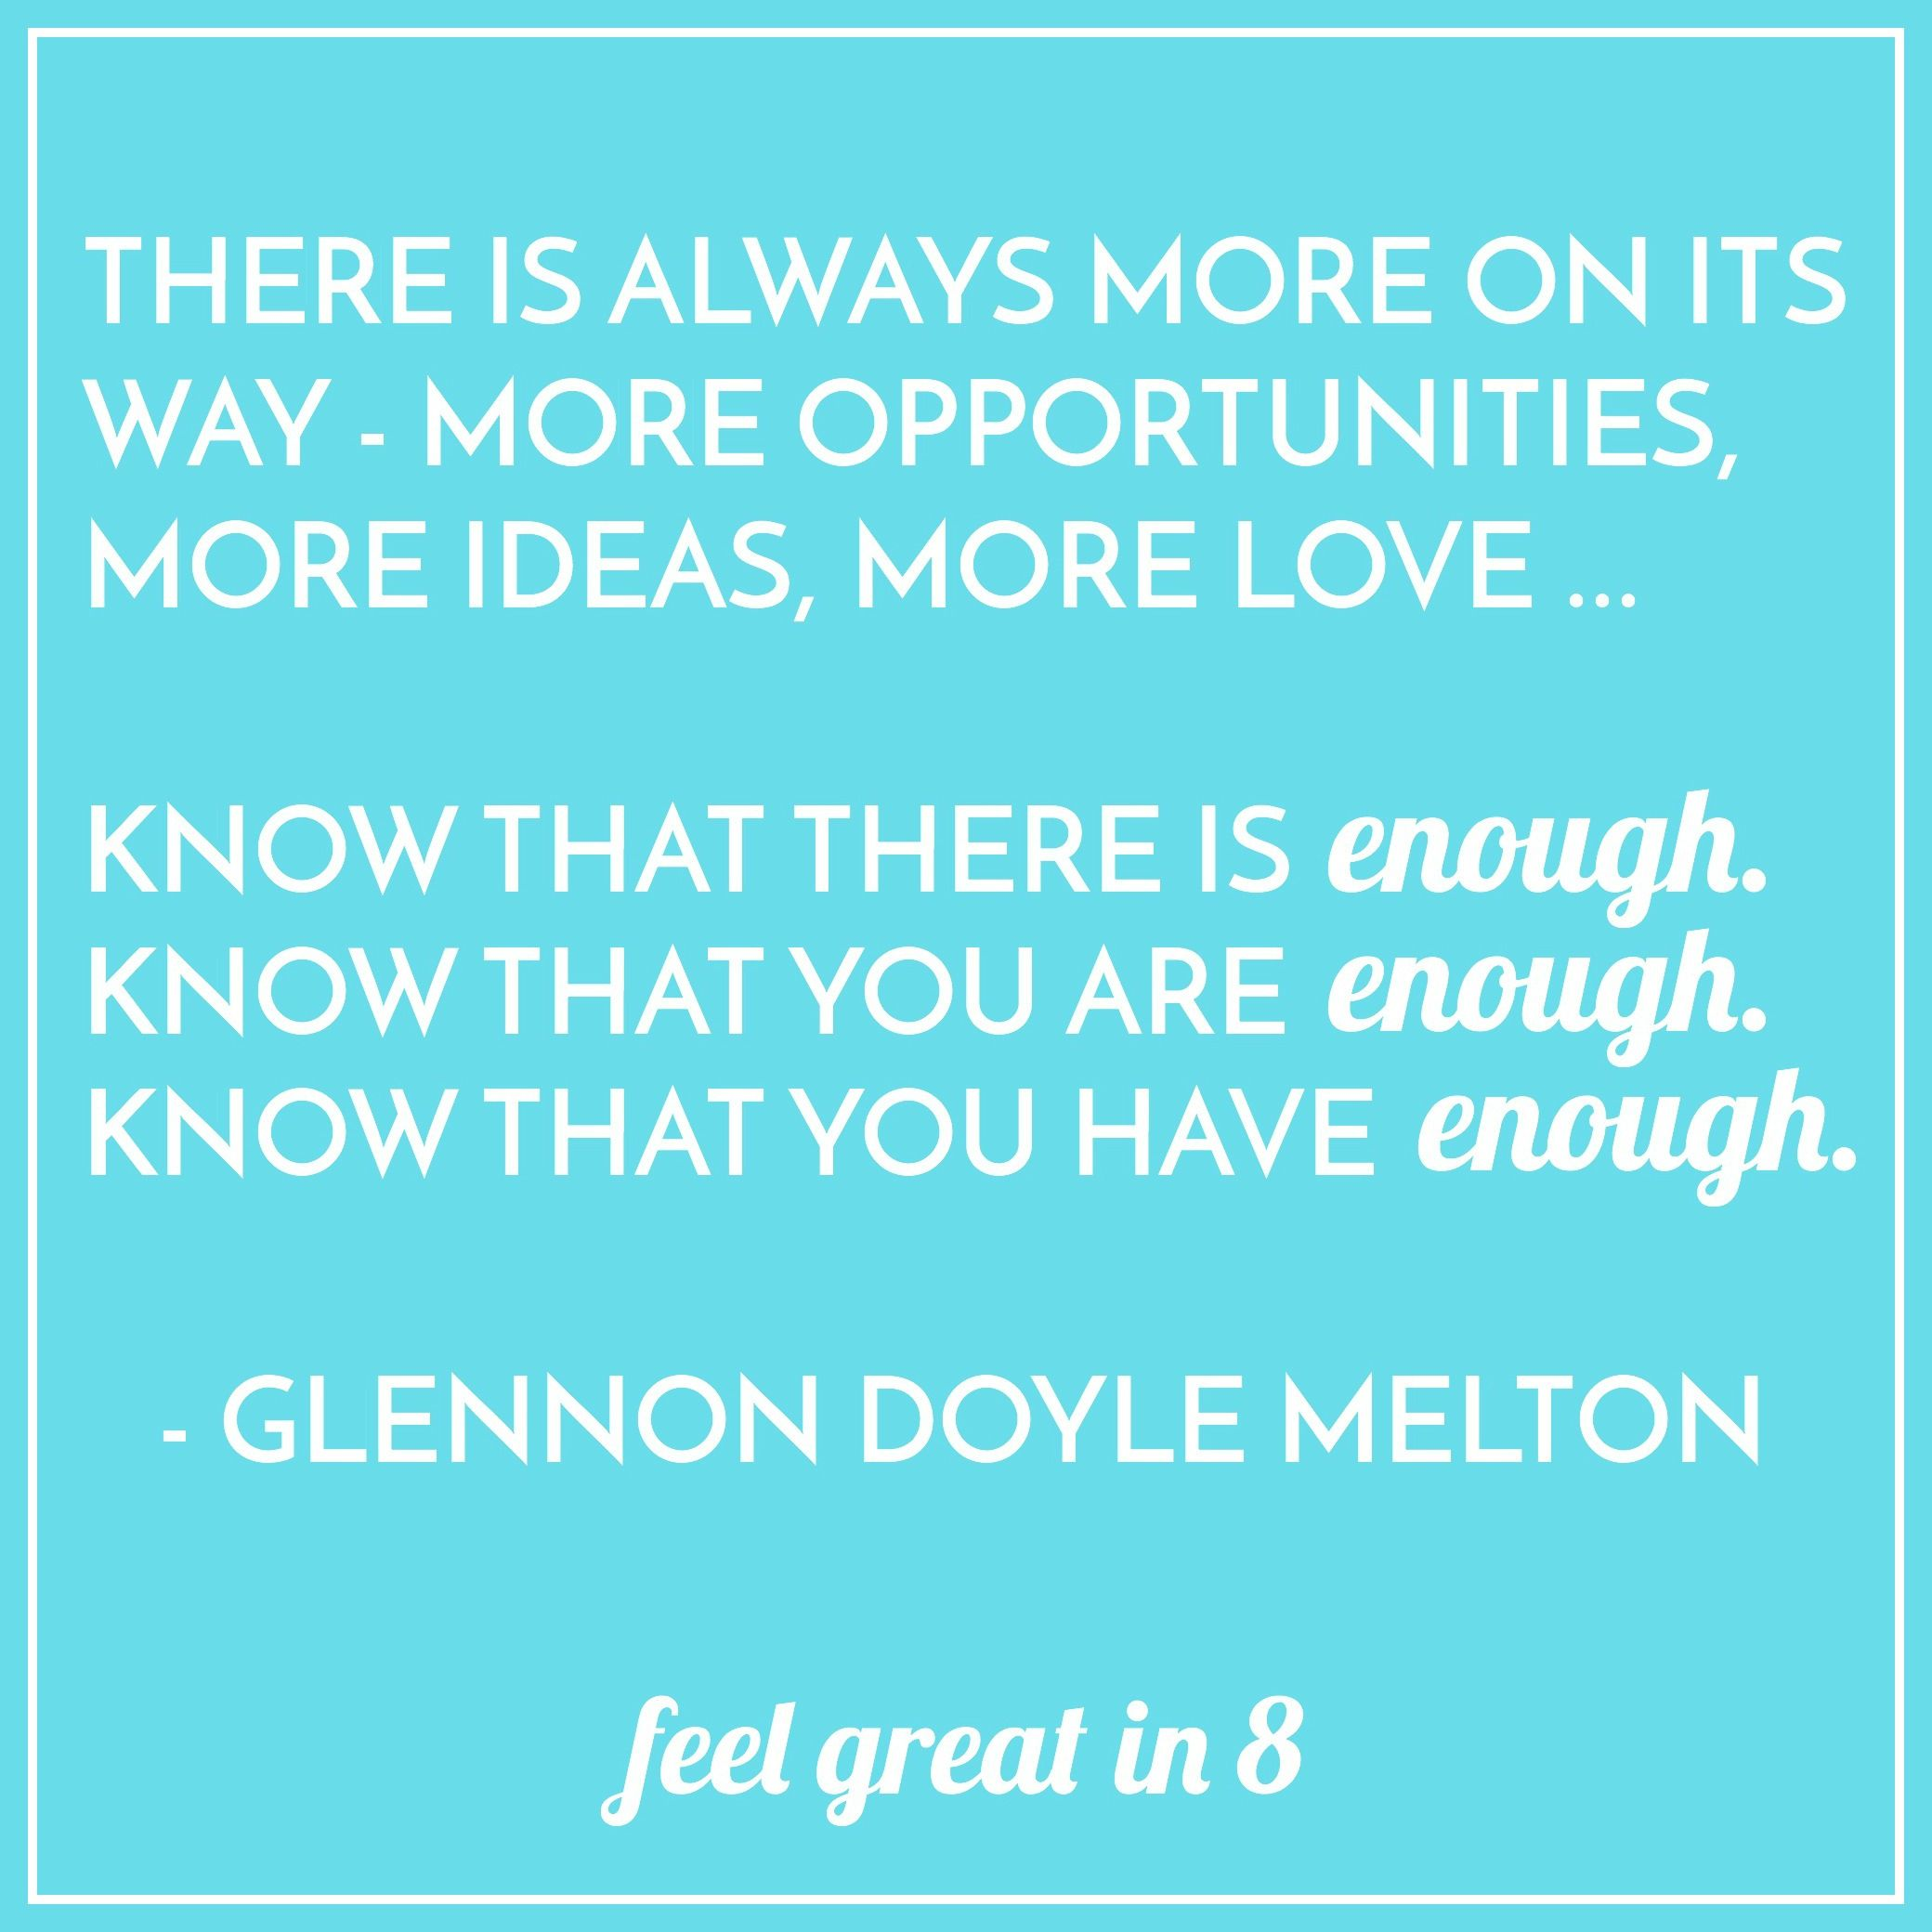 Glennon Doyle Melton Quotes 25 Quotes To Inspire & Brighten Your Day  Thoughts And Inspirational